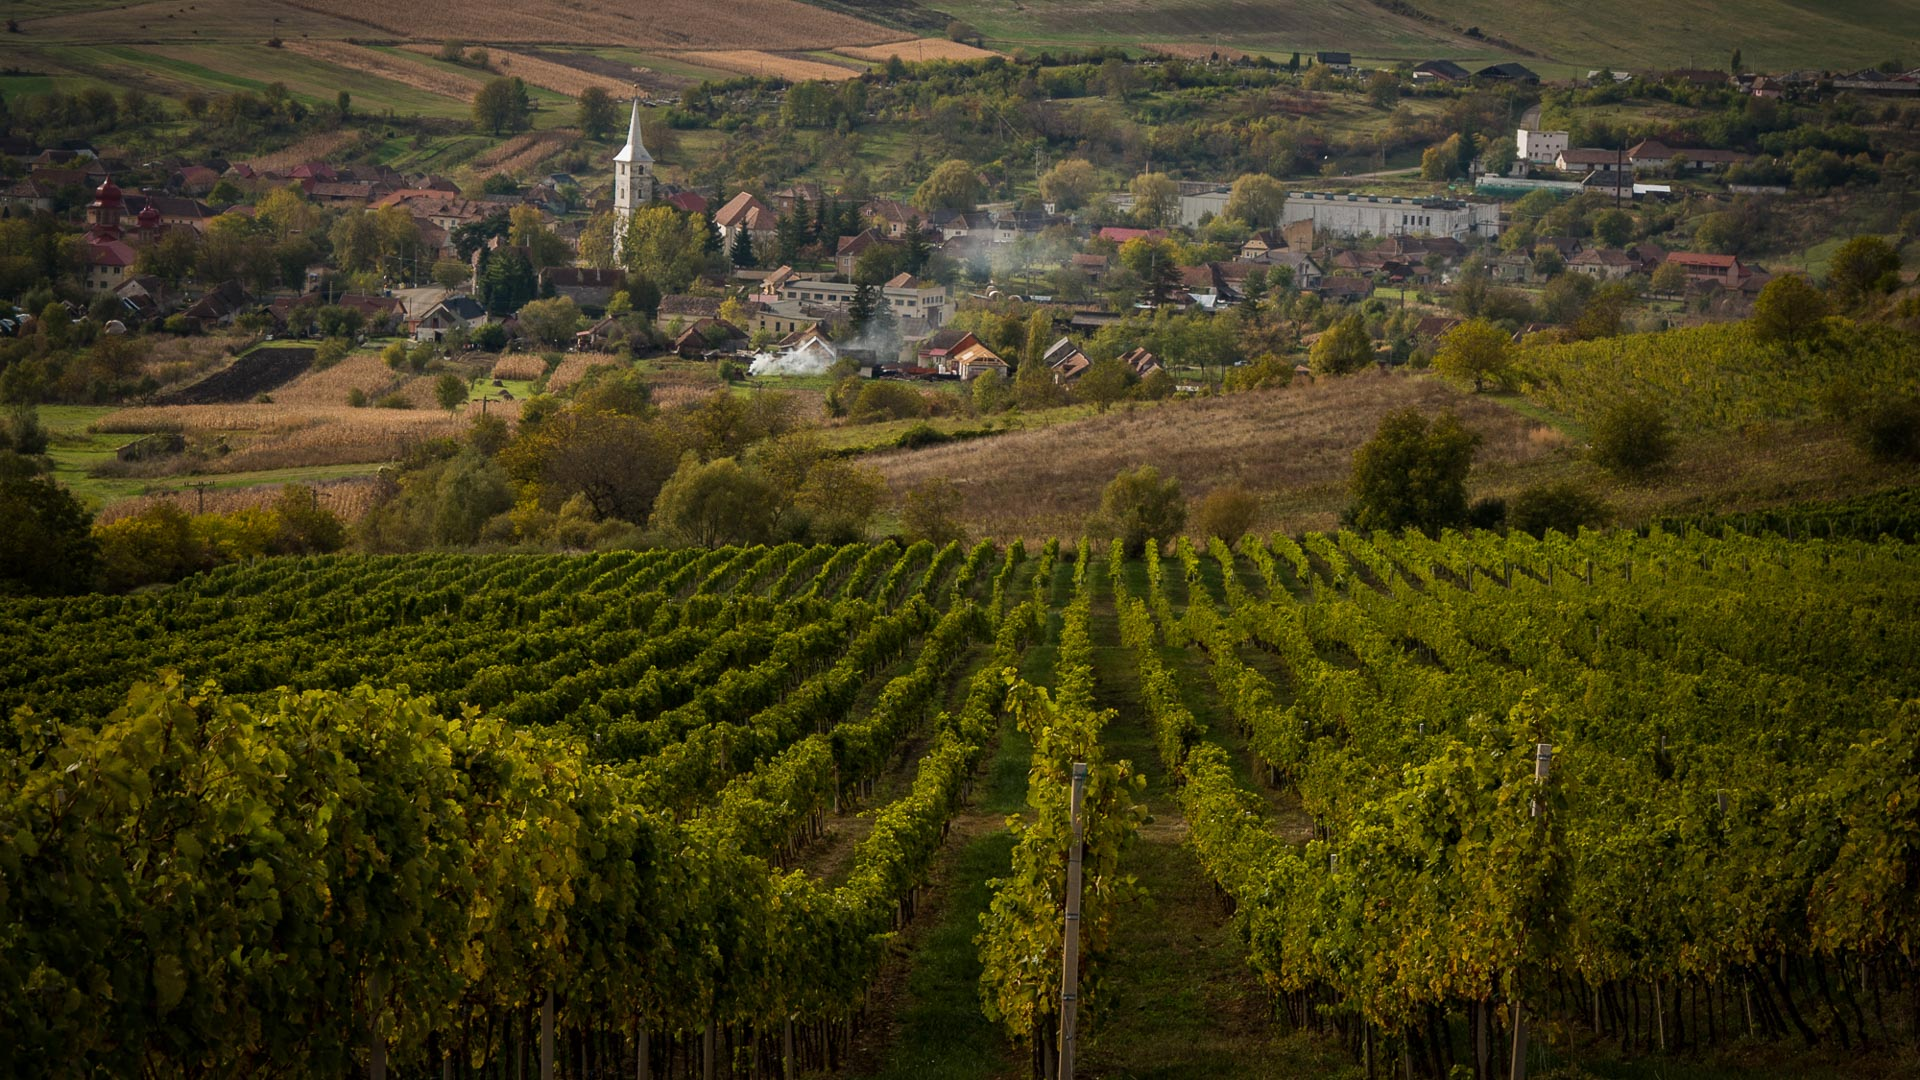 Fall in Romania – 12 stunning pictures that illustrate the season of harvest